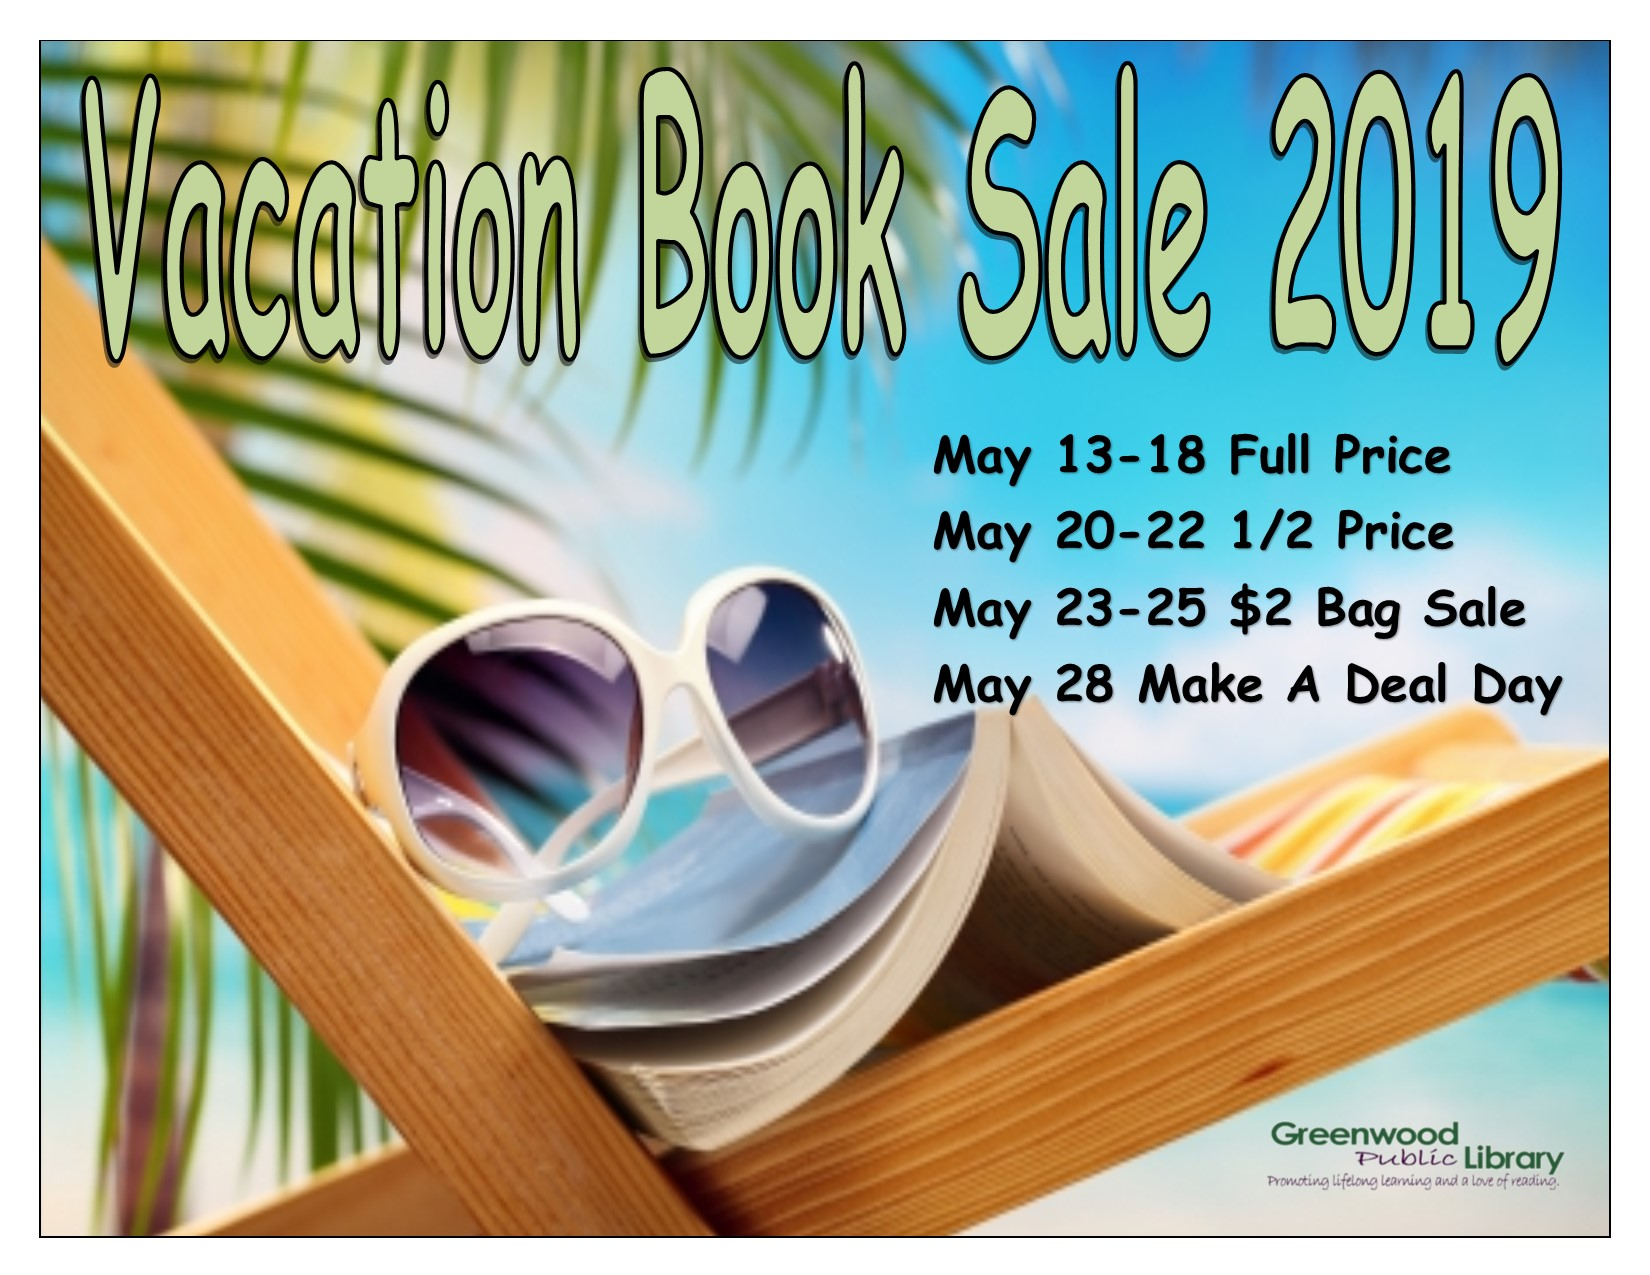 Vacation Book Sale